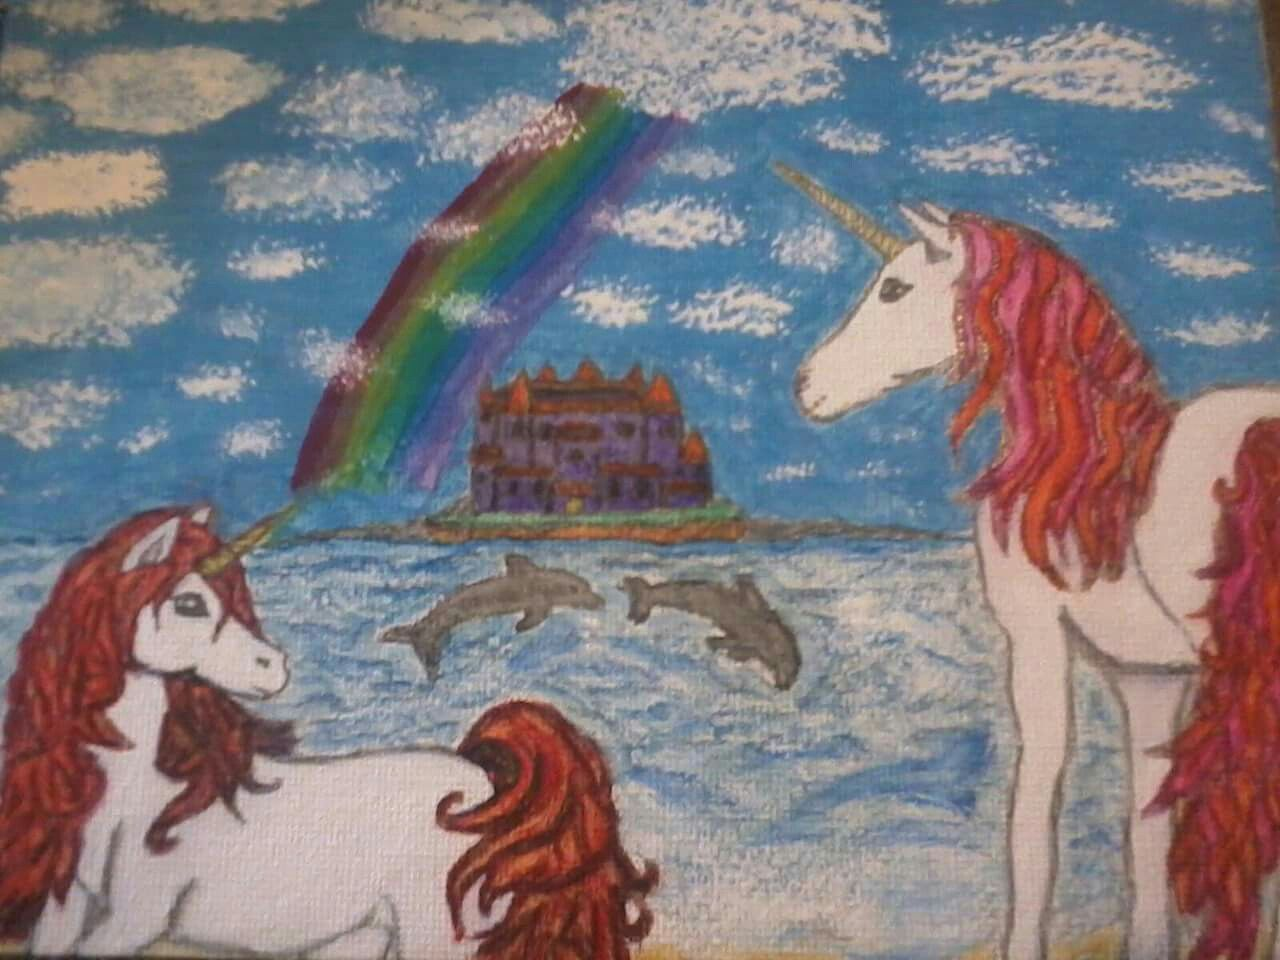 Fantasy island with unicorns and dolphins. For my friend Heather. Drawn with pencil and painted with Watercolors. #art #artwork #unicorn #unicorns #paintings #dolphins #rainbow #fantasyart #fantasy #paintings #canvasart #castle